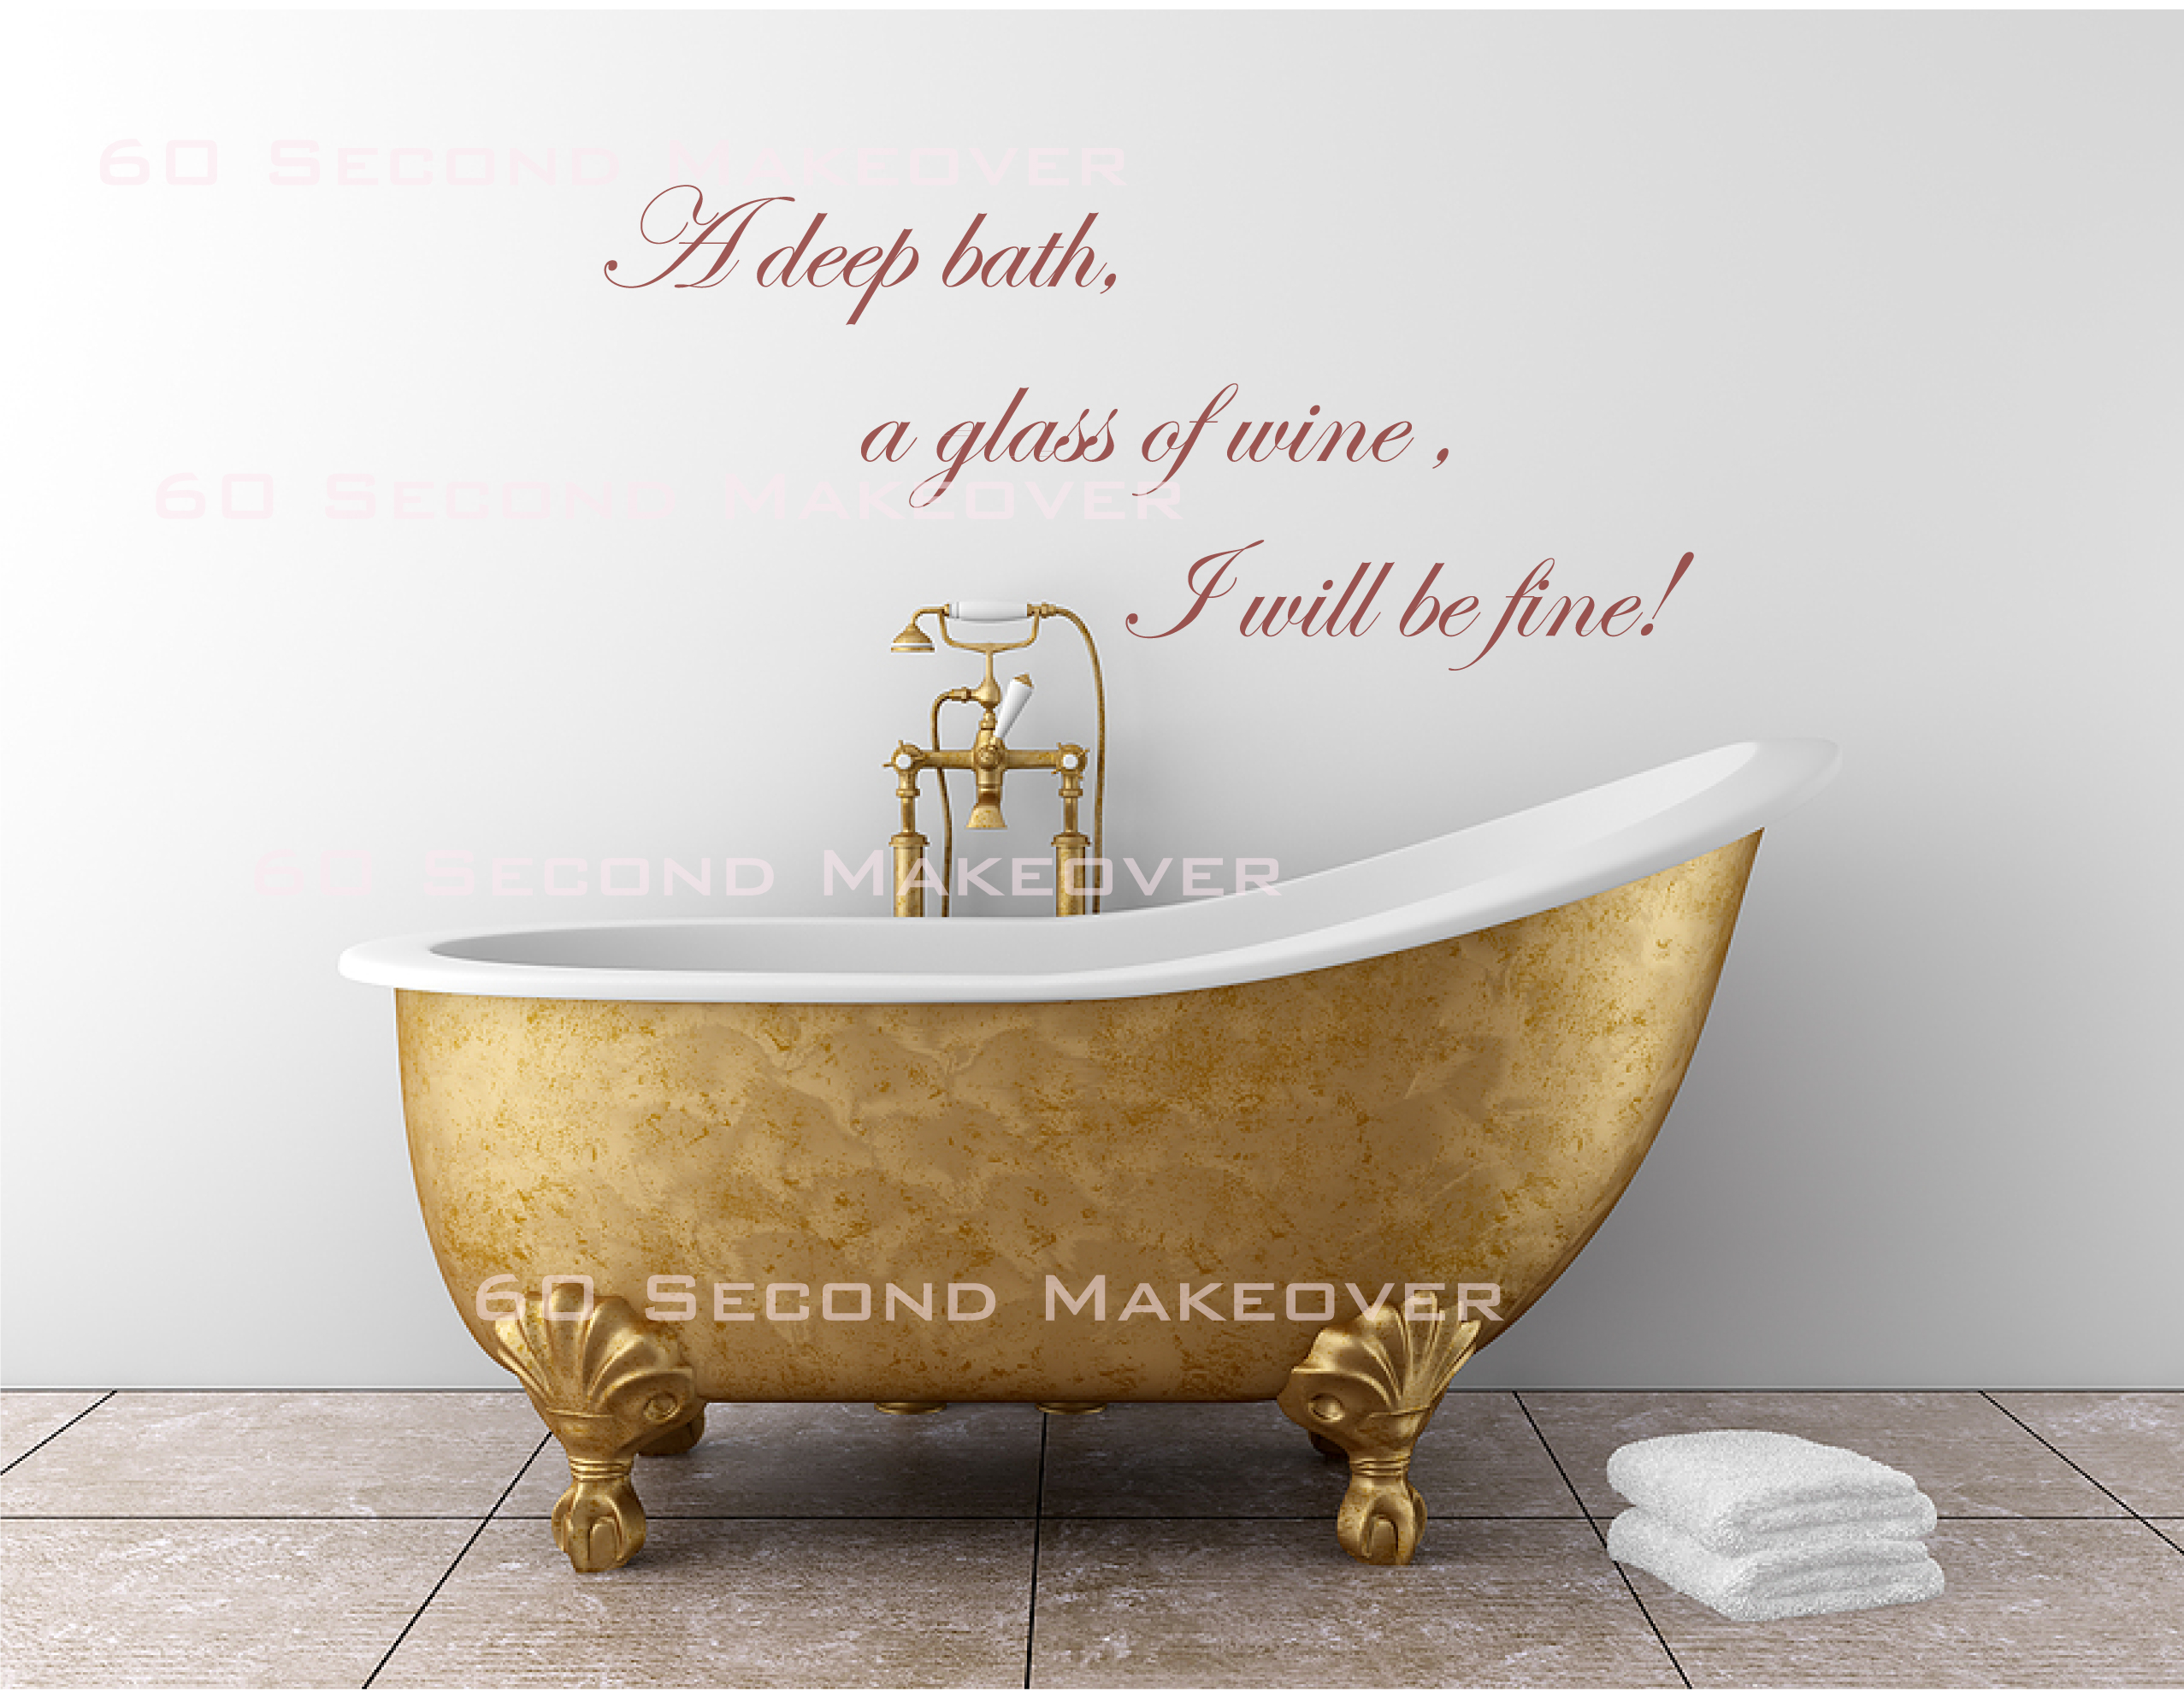 An Encouraging Wall Decal For The Bathroom By 60 Second Makeover